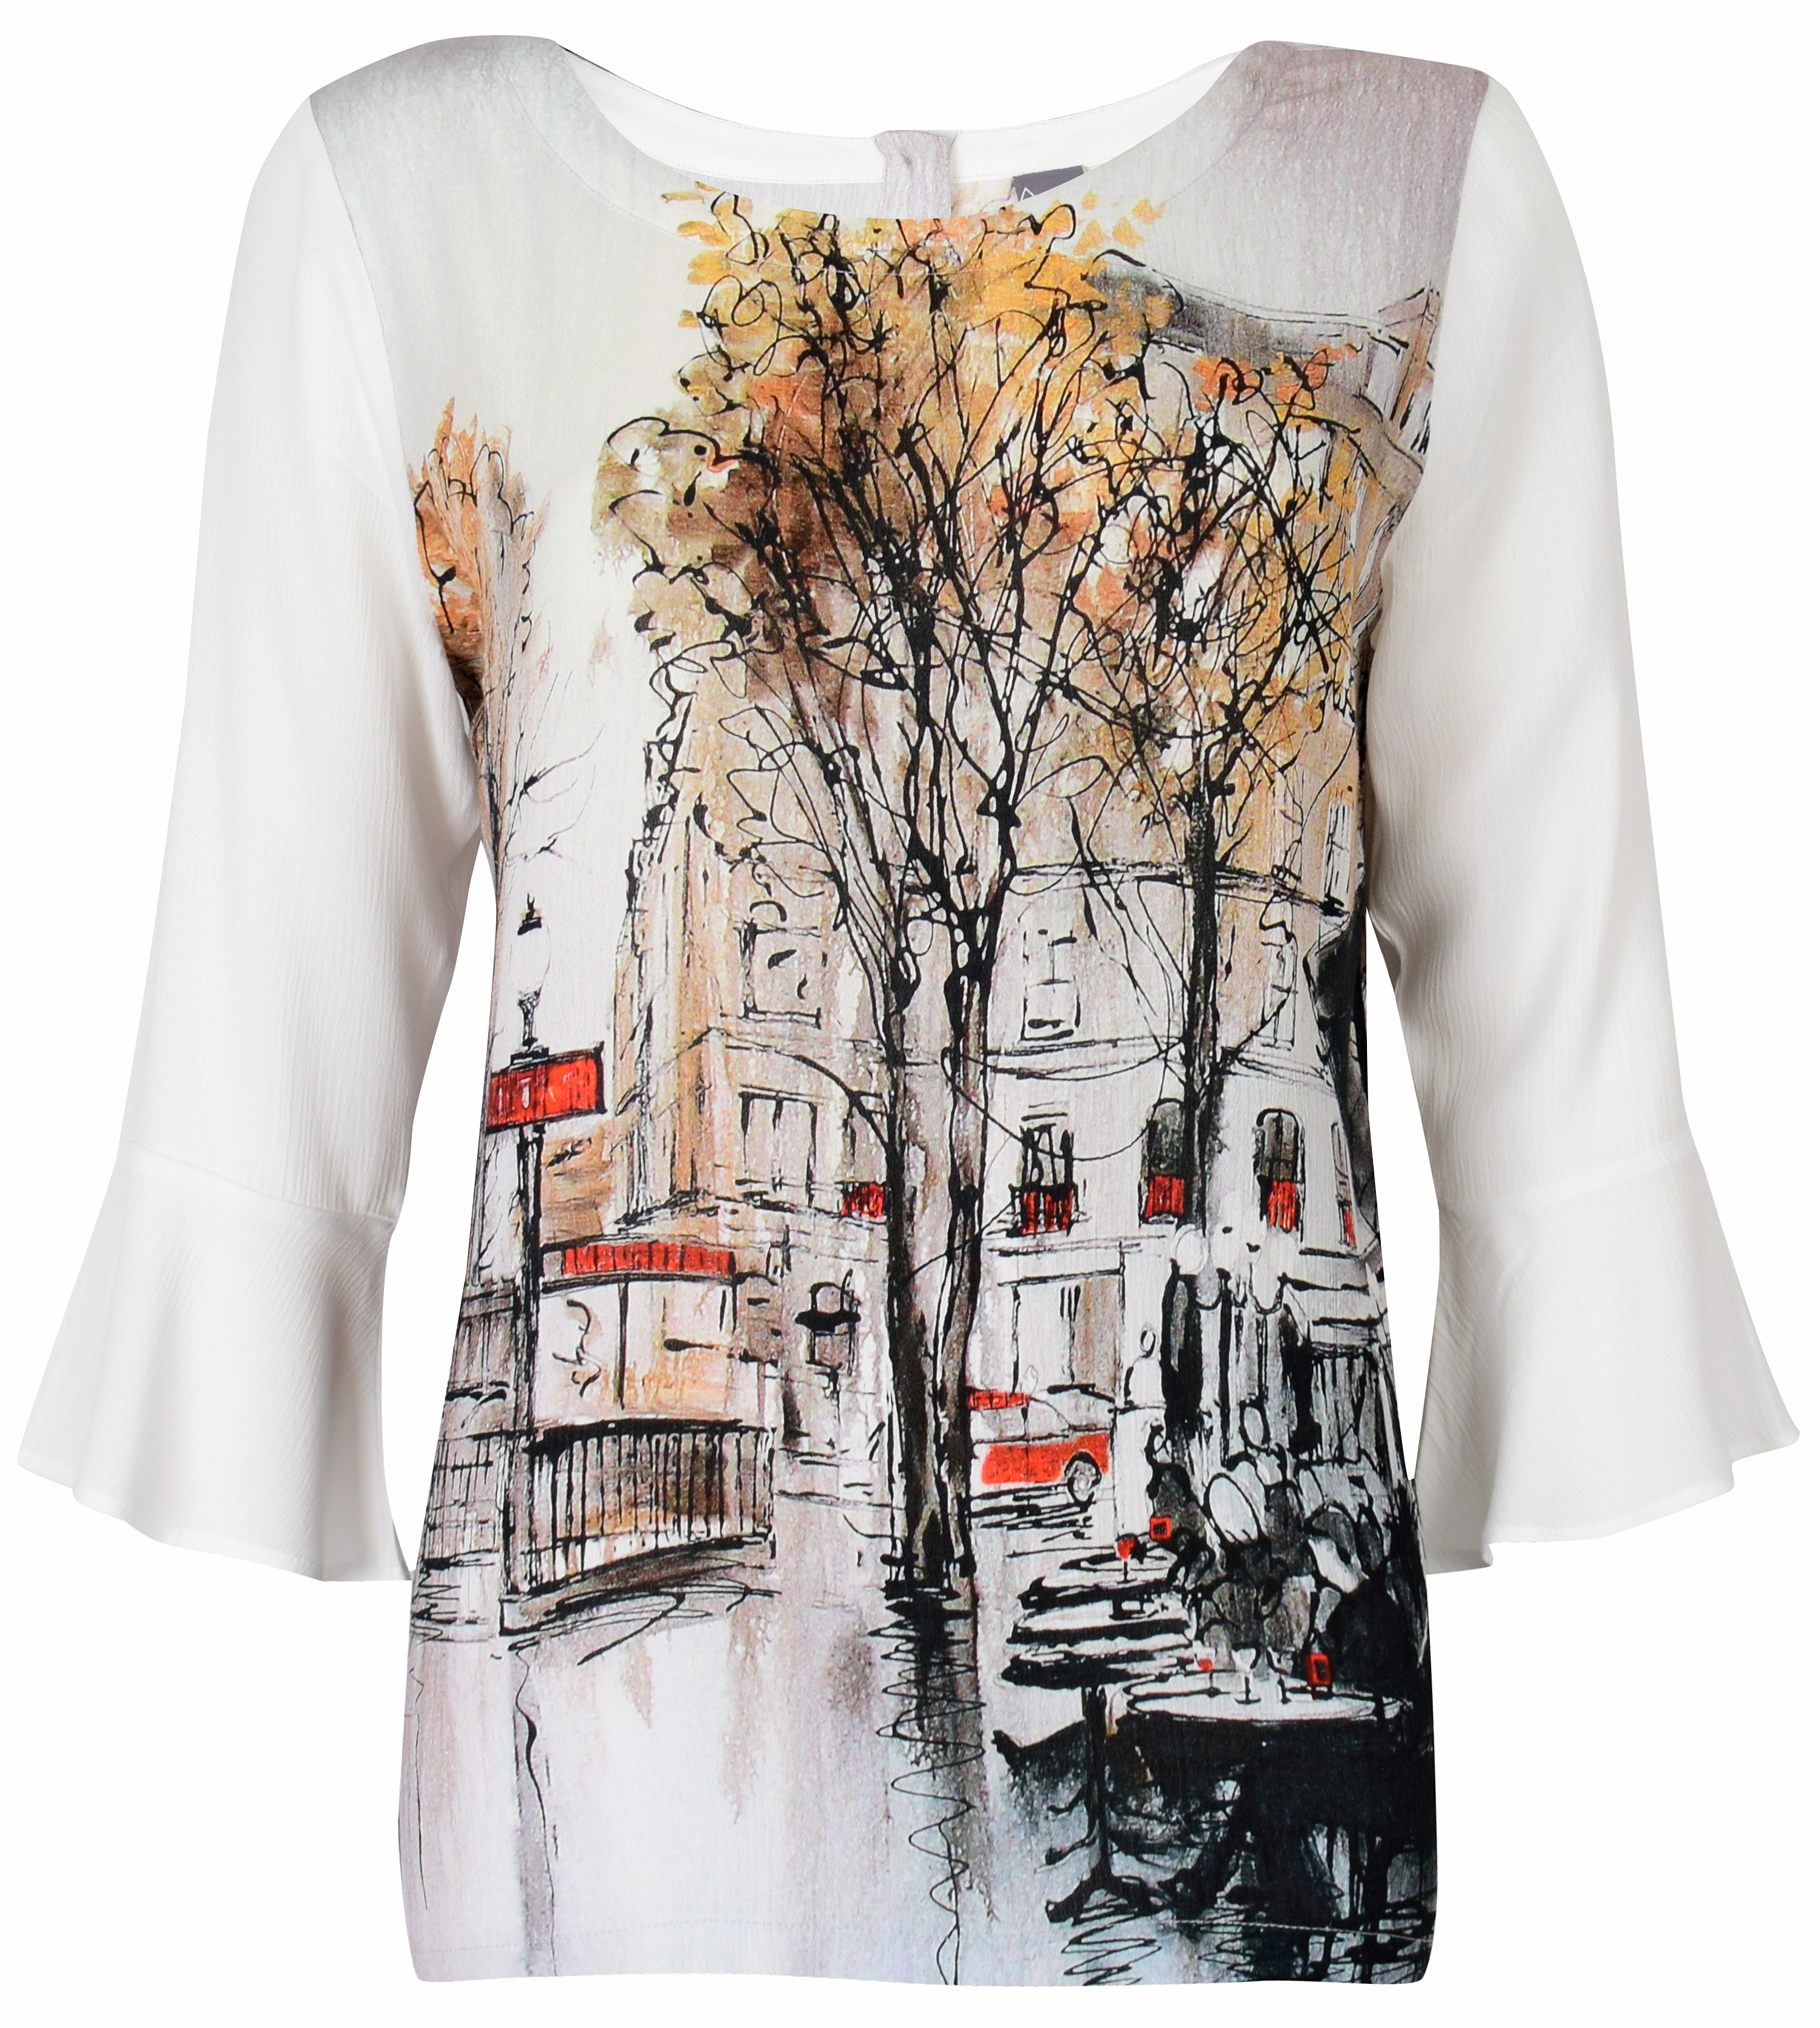 Simply Art Dolcezza: Splendid Parisian Life Back Buttoned Abstract Art Tunic (1 Left!) Dolcezza_Simplyart_59703